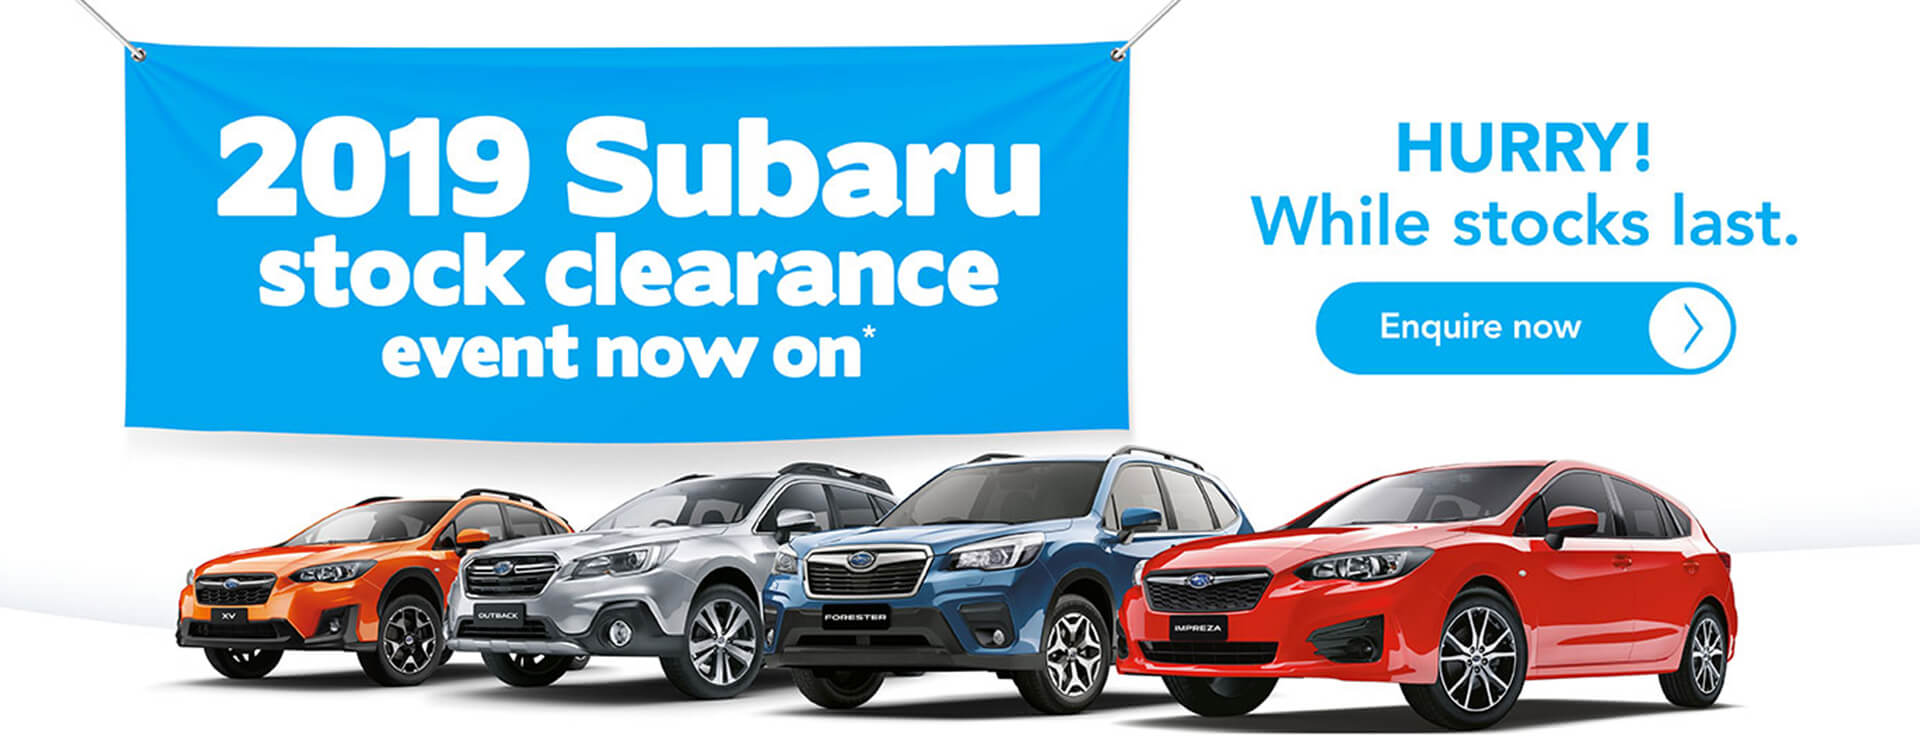 2019 Subaru stock clearance event on now. Hurry! While stocks last.